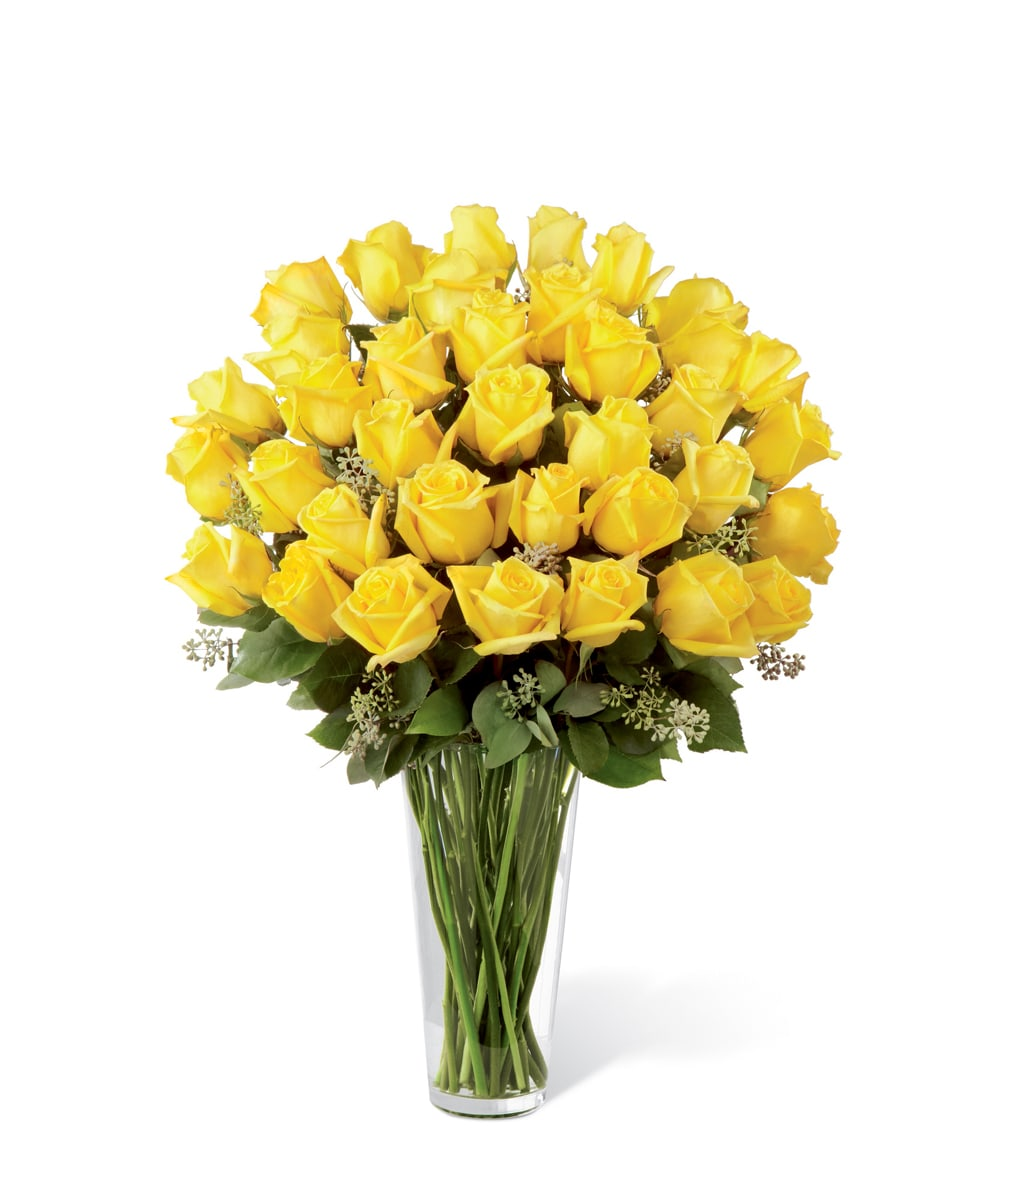 The FTD® Yellow Rose Bouquet - Exquisite